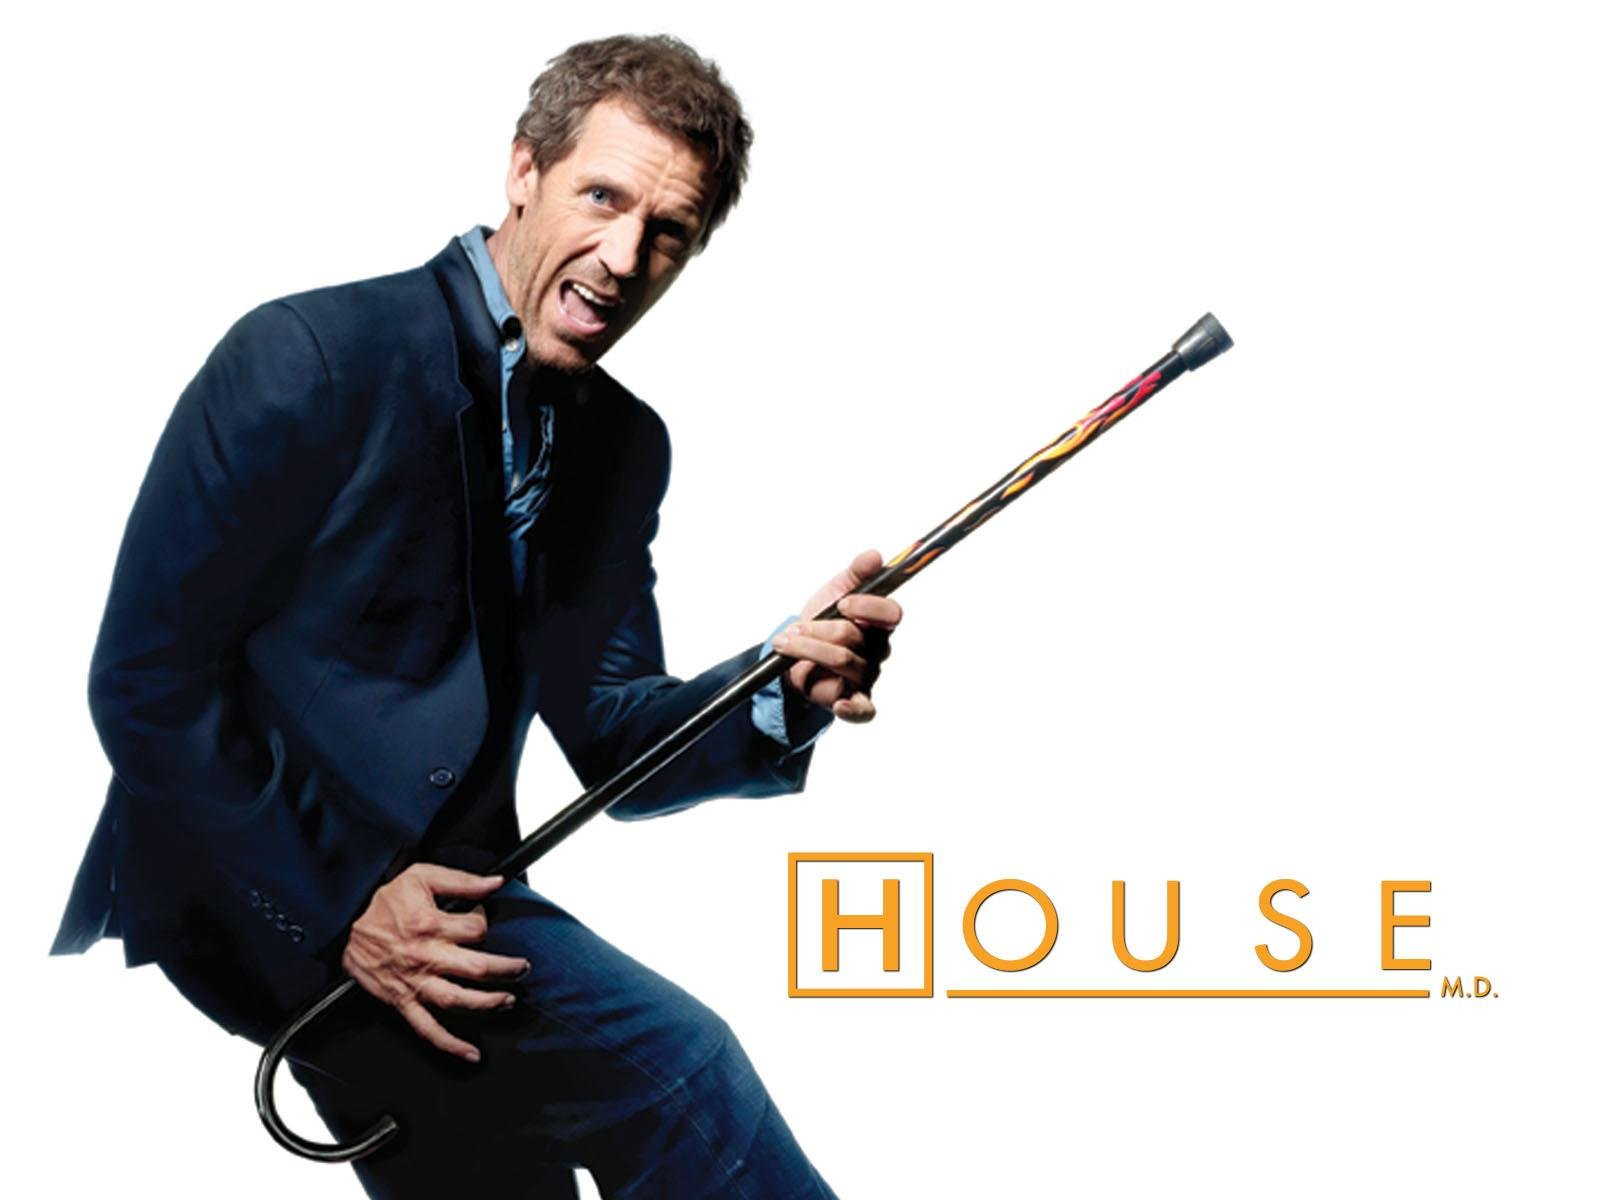 Amazon.com: House Season 4: Amazon Digital Services LLC